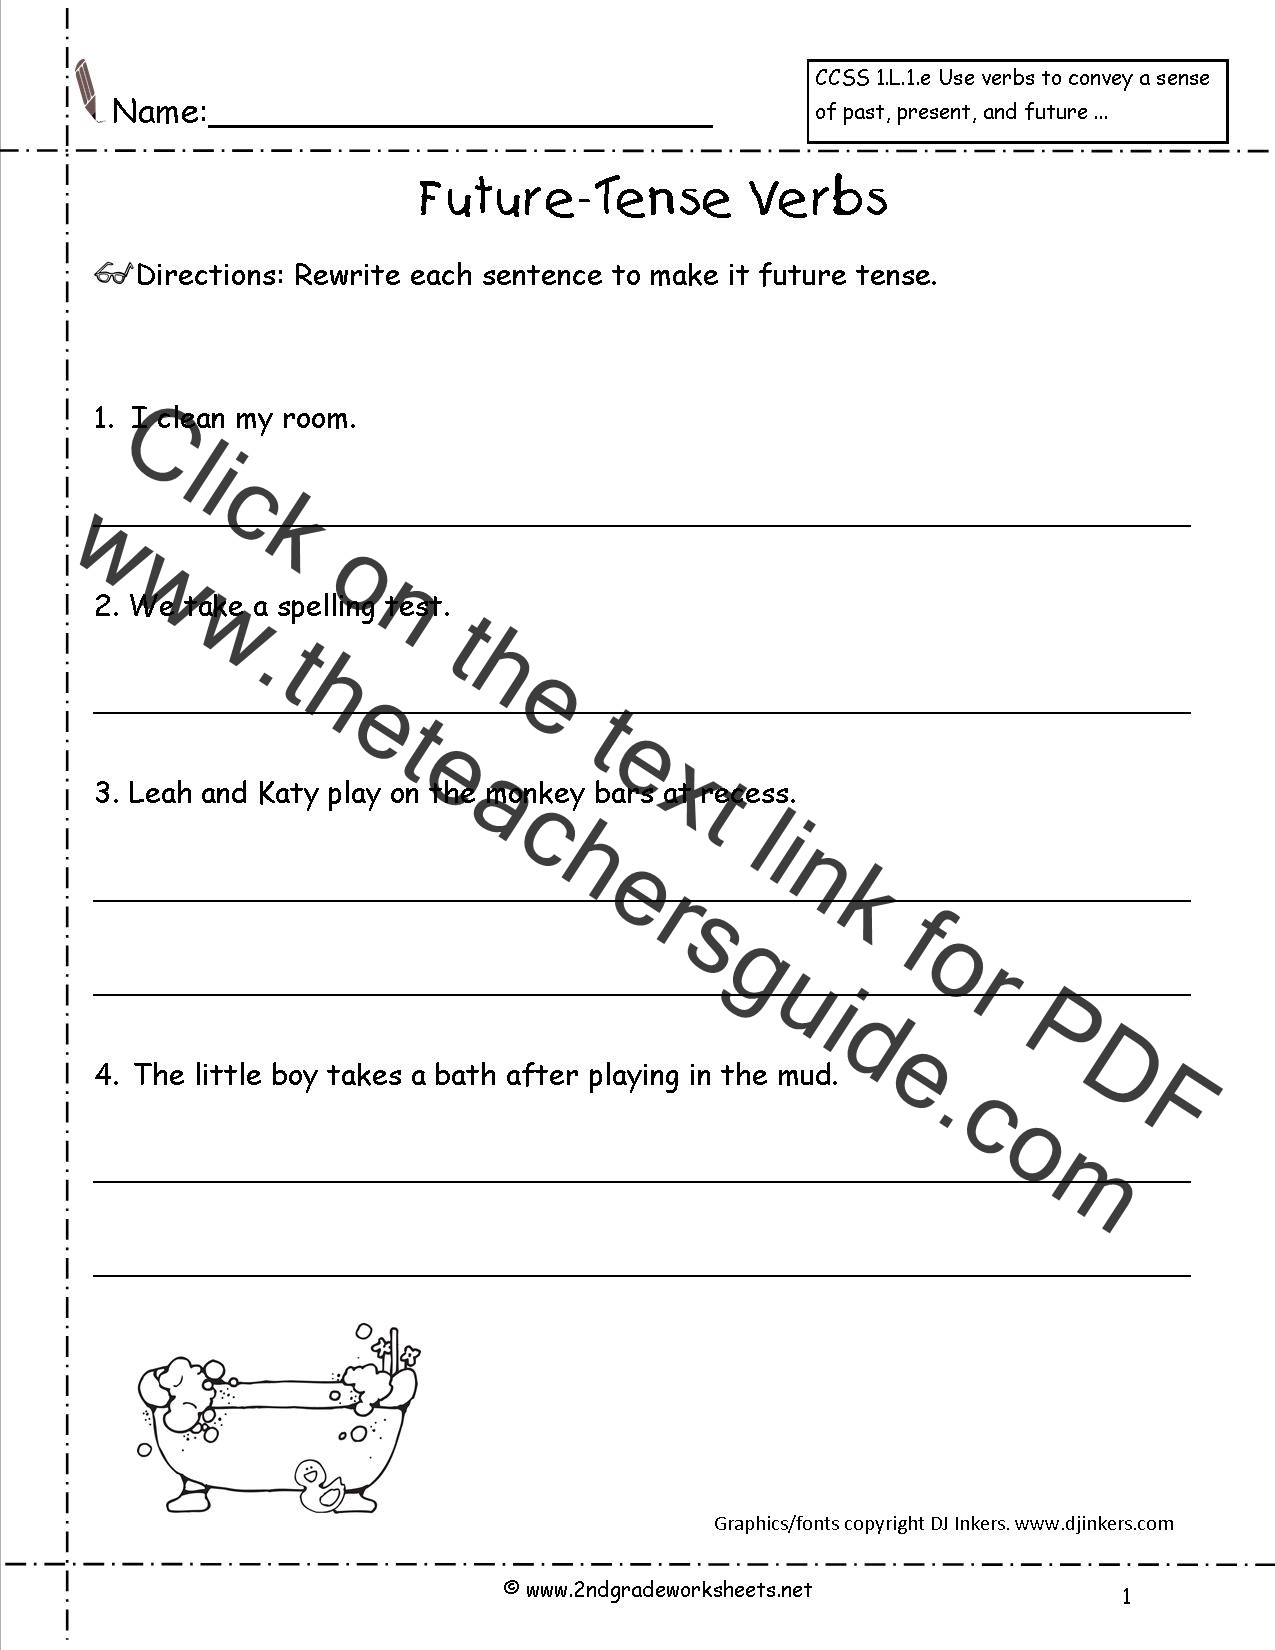 Verb Tense Worksheets 2nd Grade Future Tense Verbs Worksheet